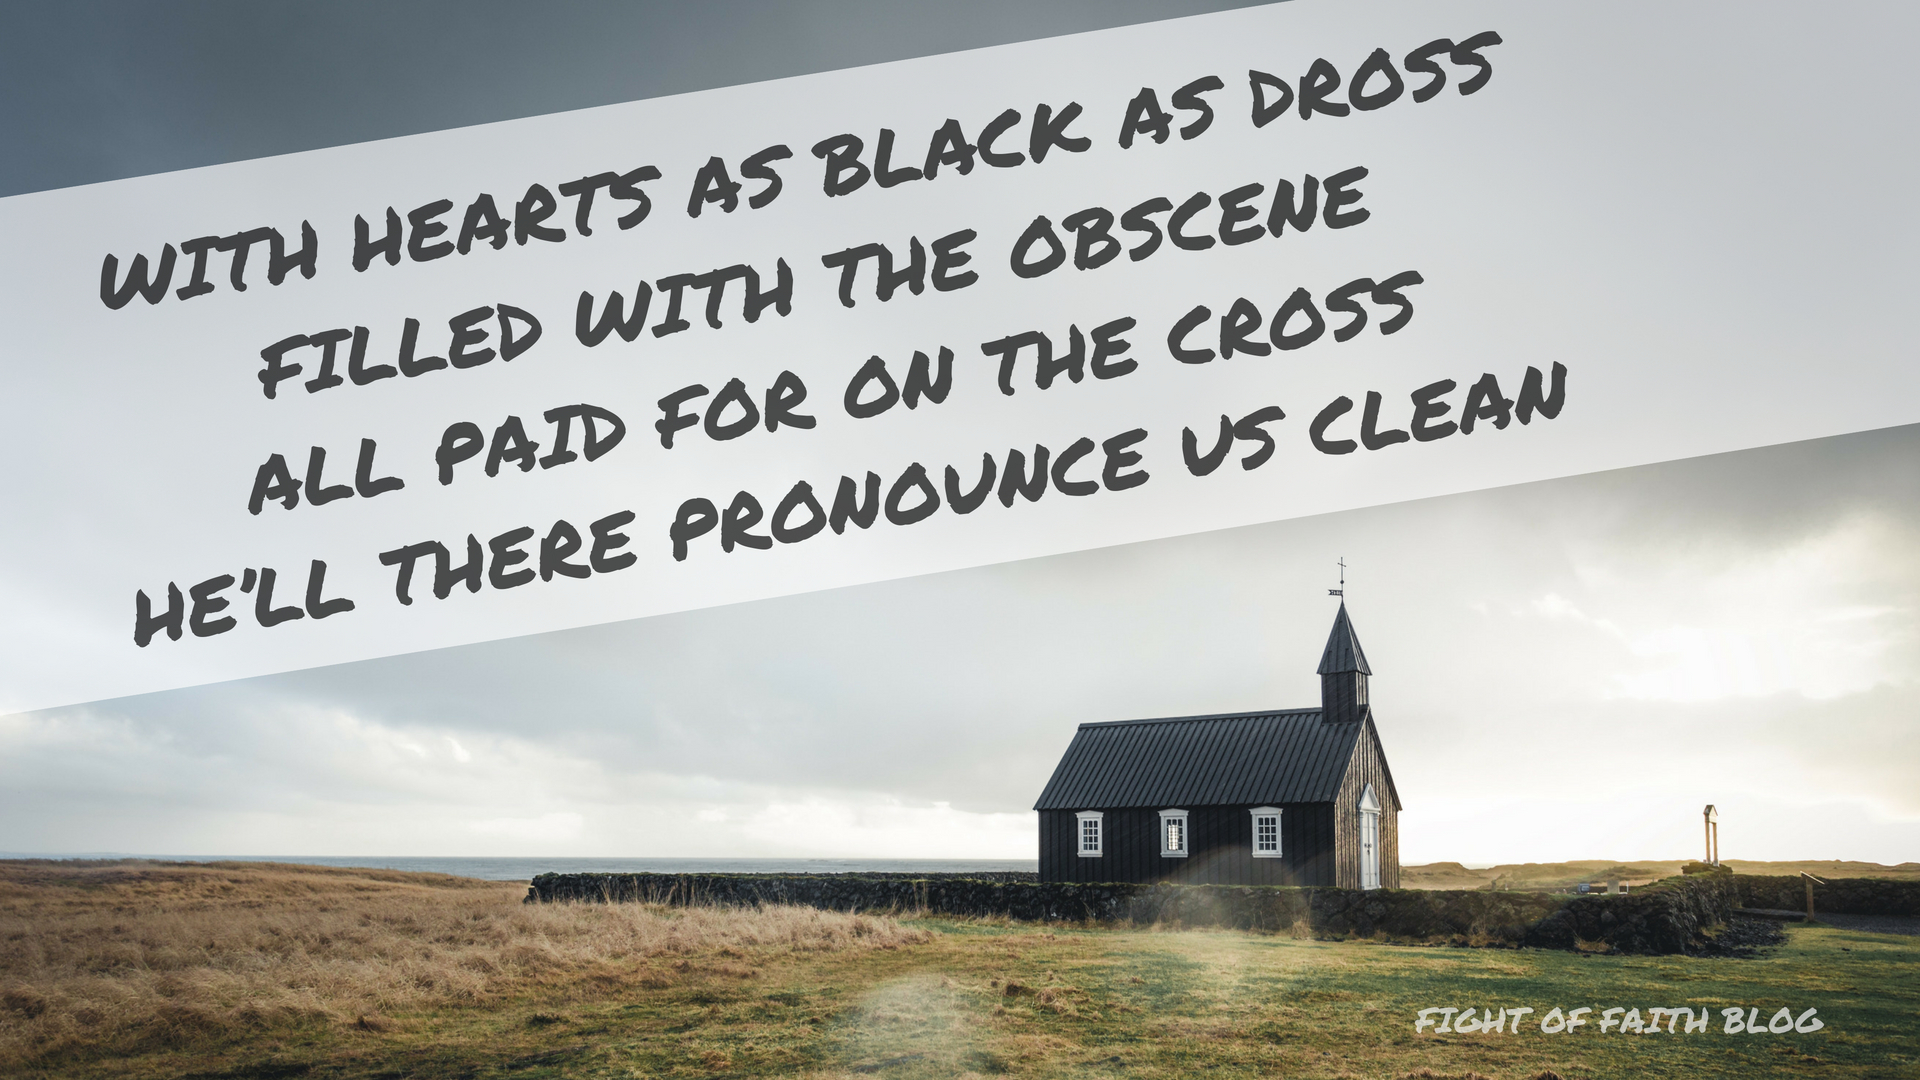 With hearts as black as drossFilled with the obsceneAll paid for on the crossHe_ll there pronounce us clean